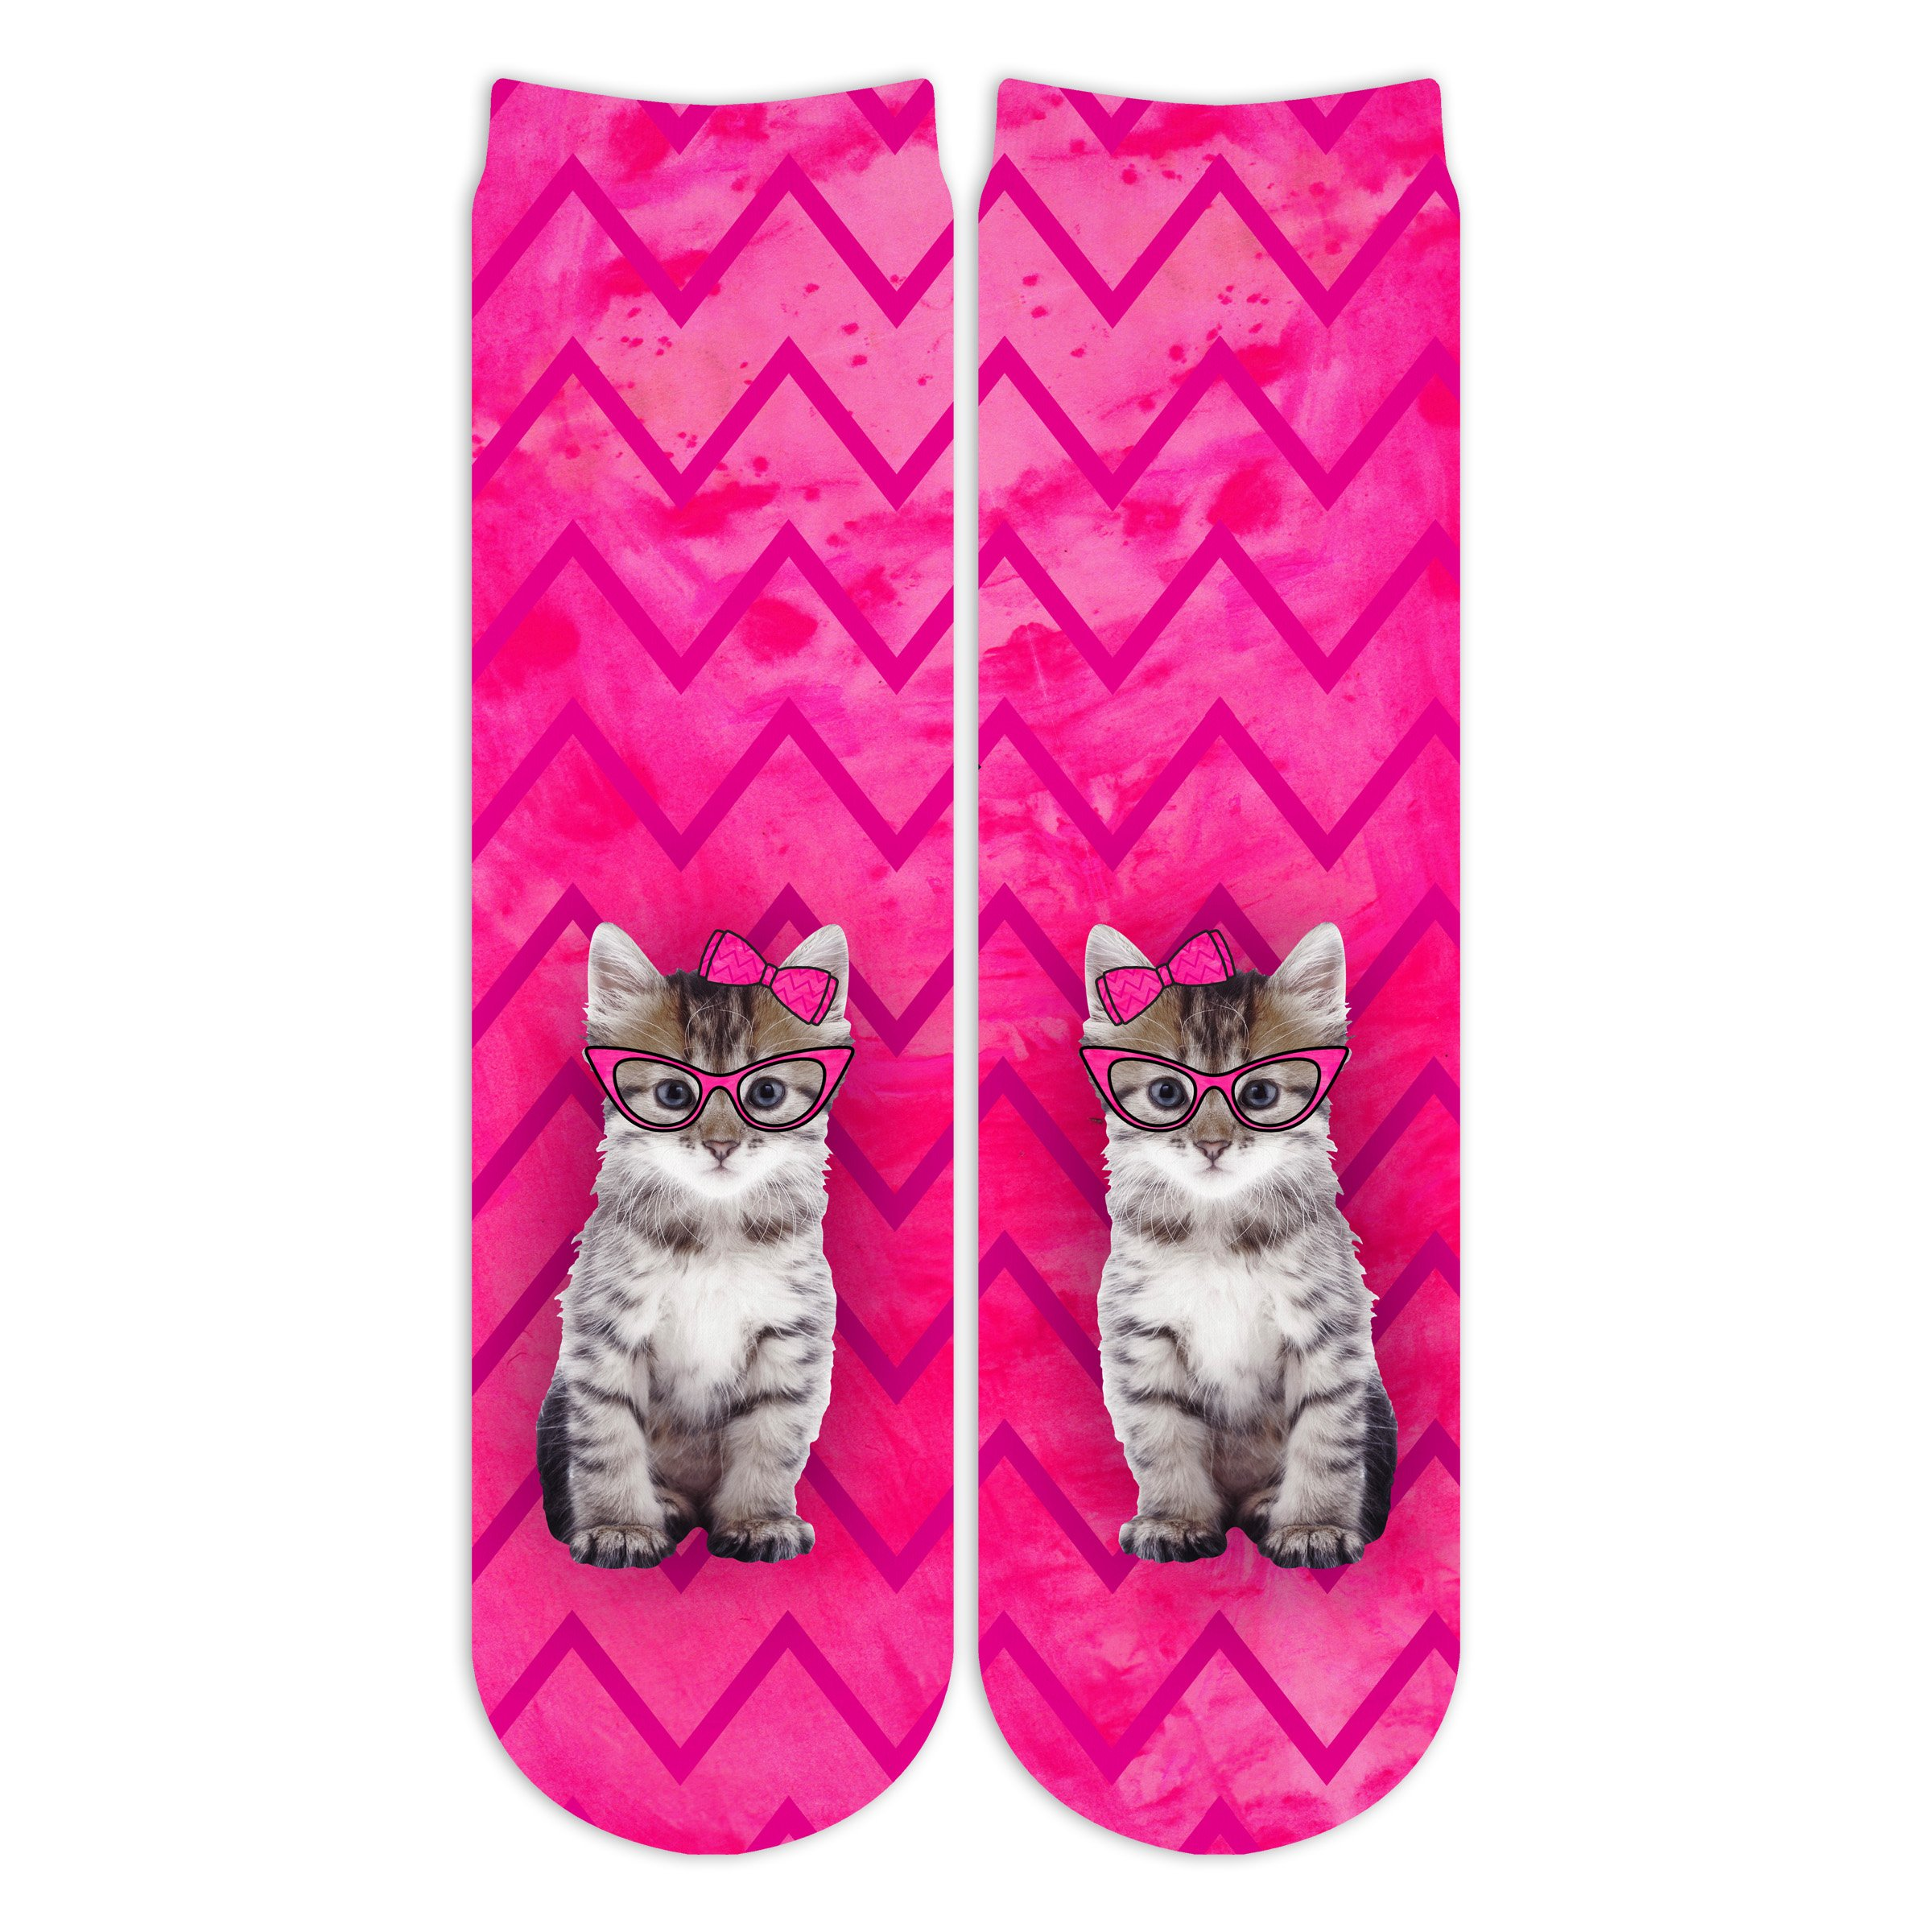 Sublime Designs Socks Fun Print (Crew Cat with Bow and Glasses)